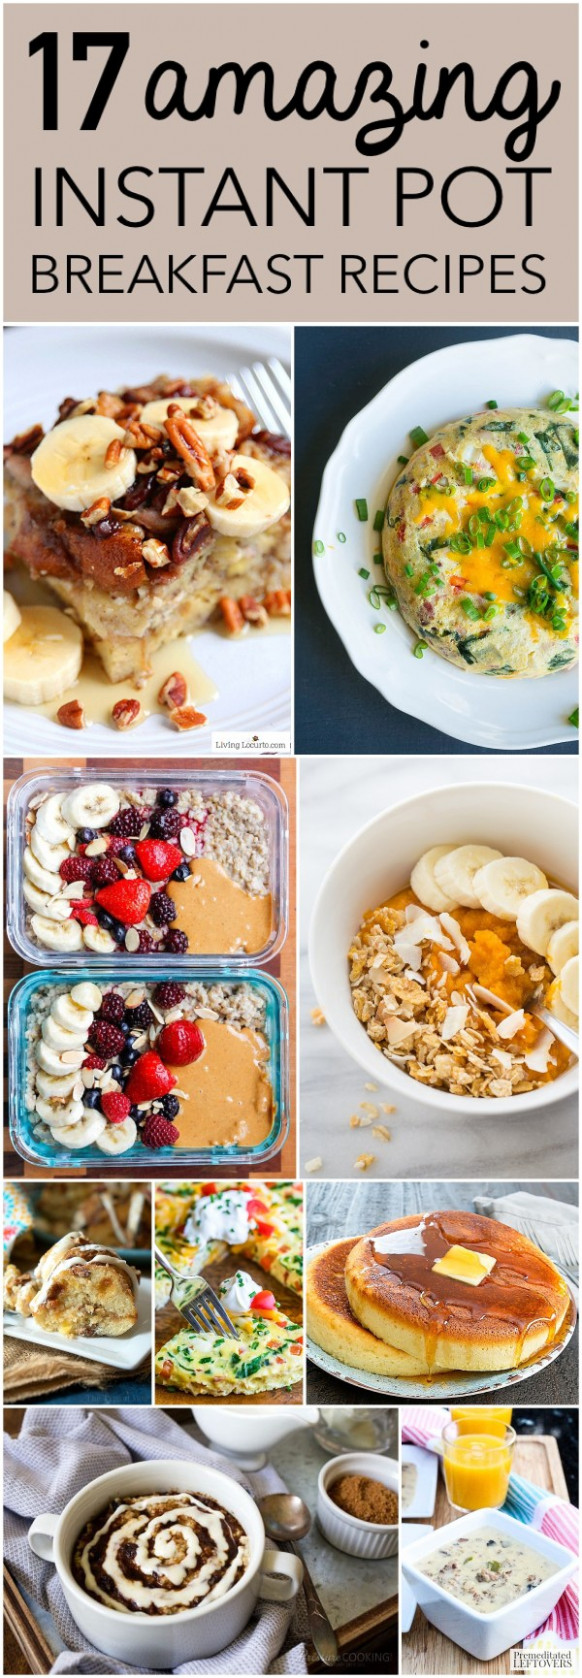 9 Awesome Breakfasts to Make in Your Instant Pot - Six ...